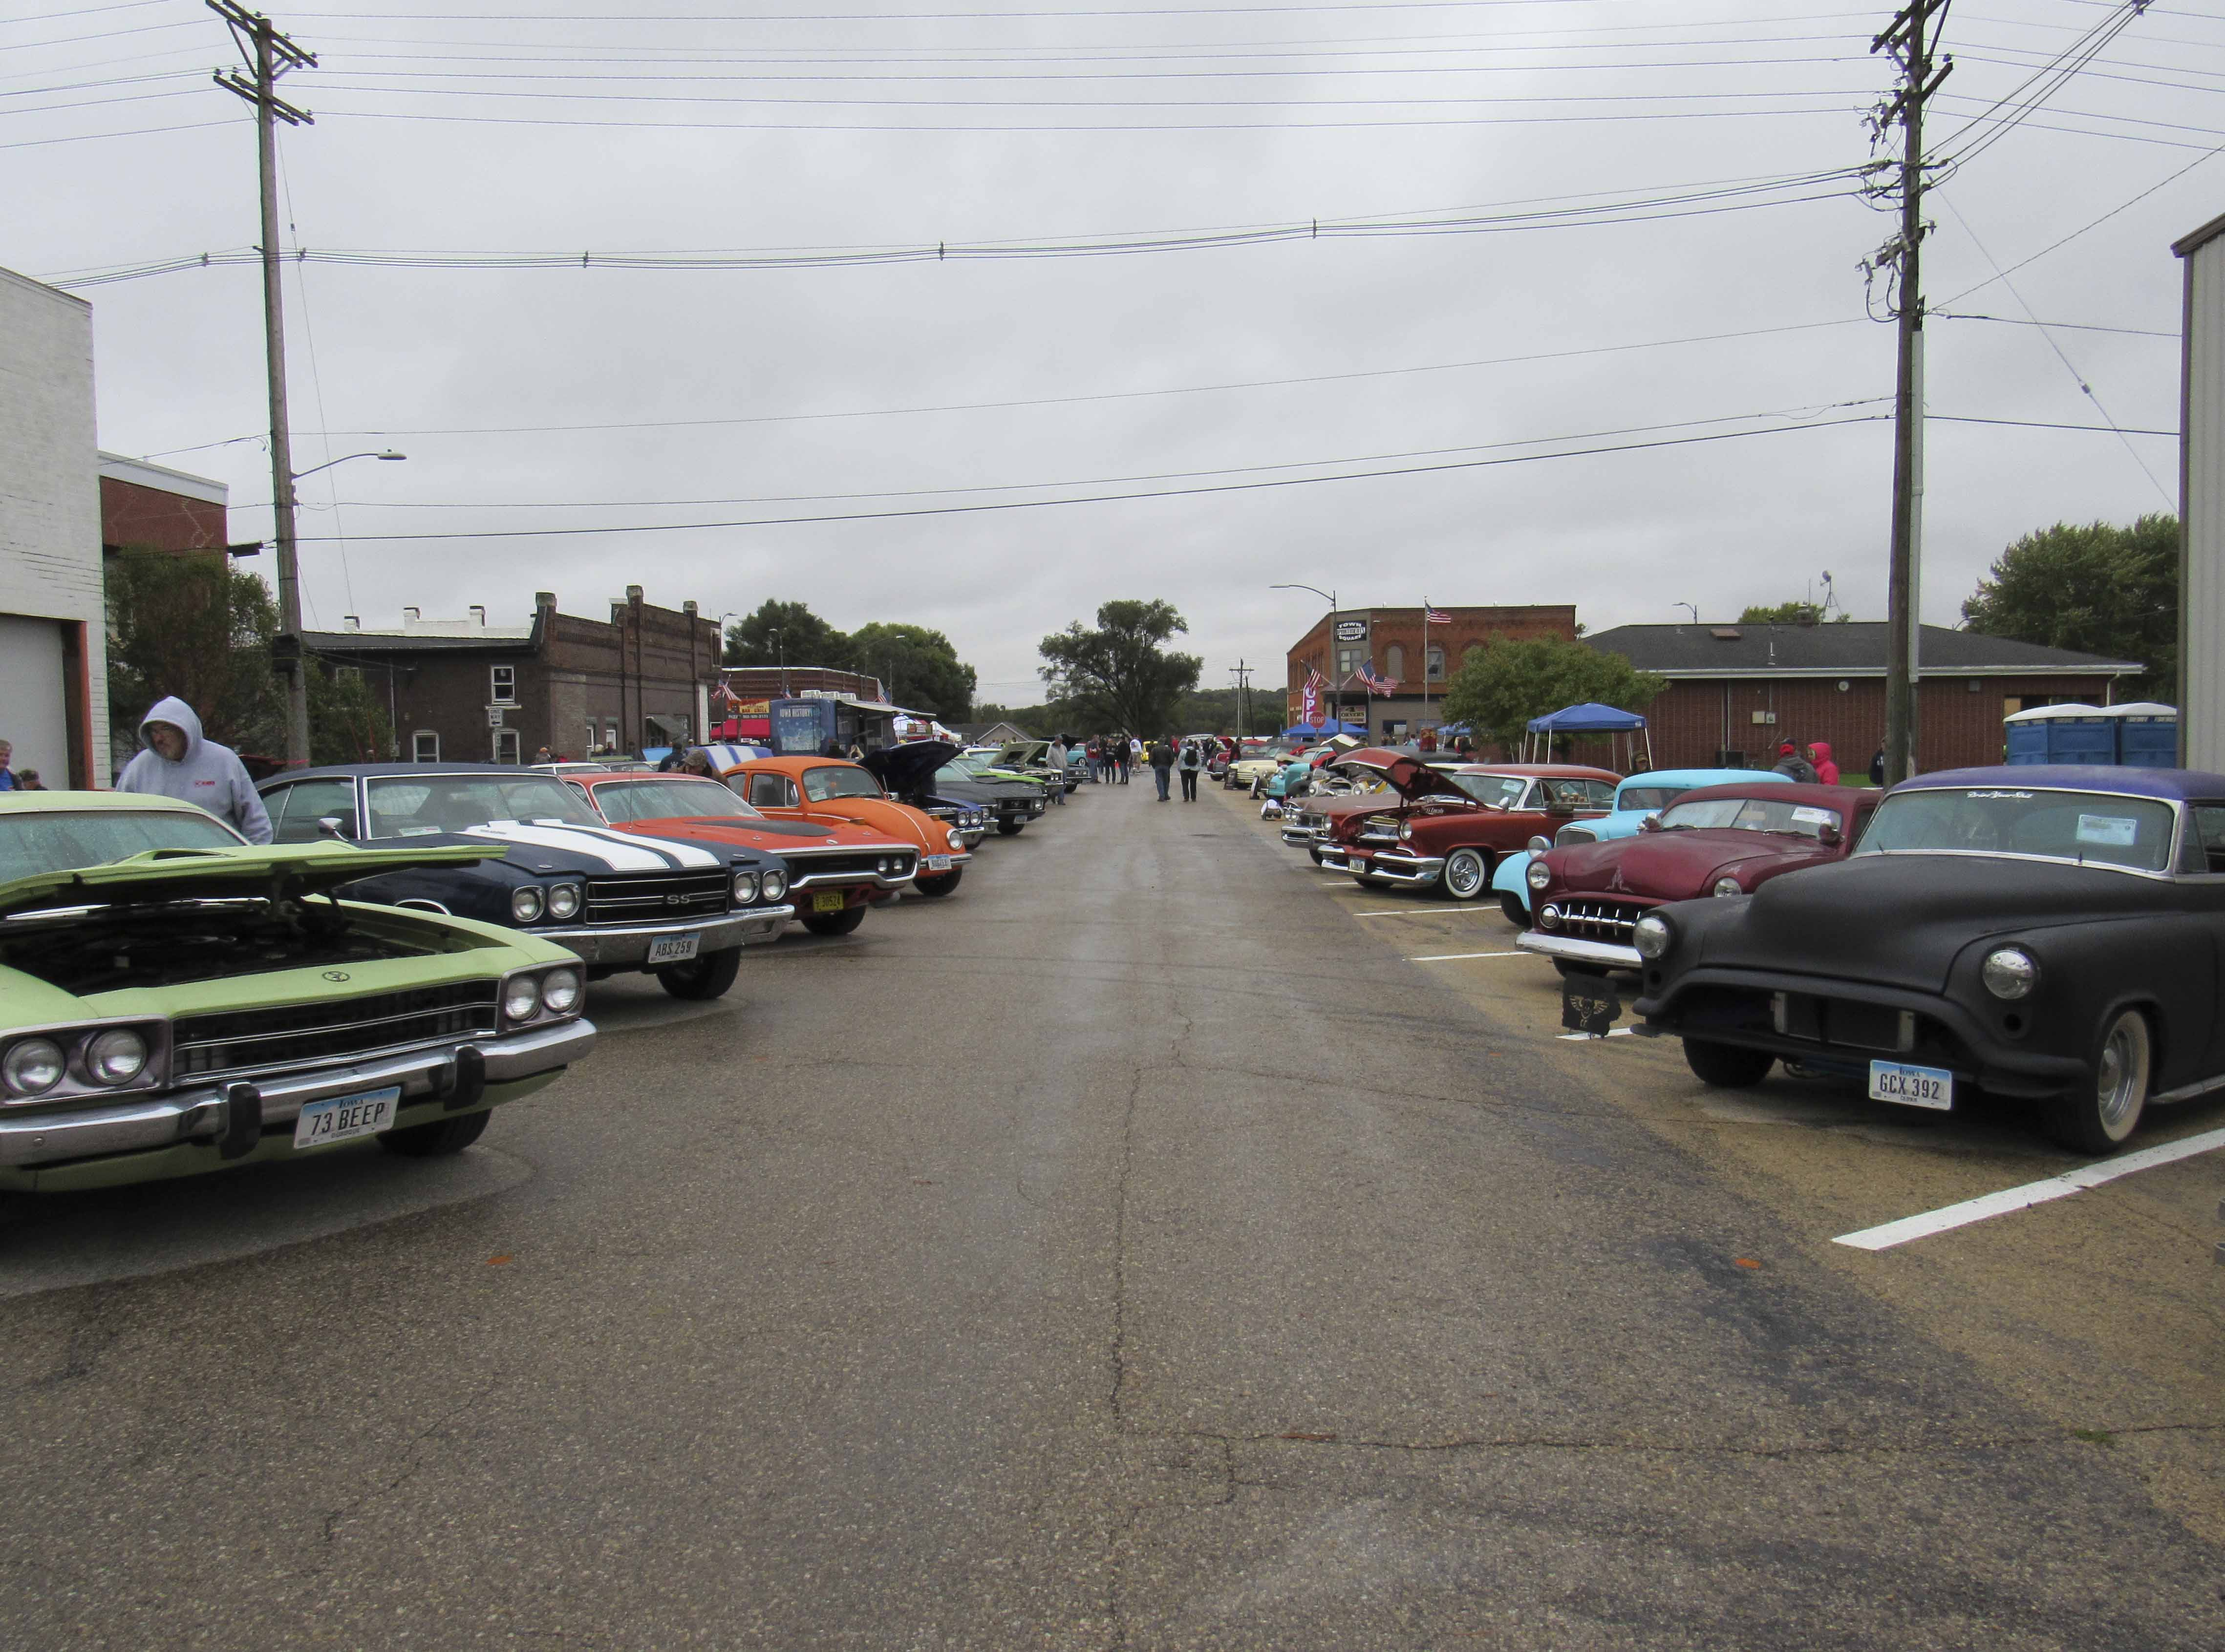 Despite the non-stop rain on Sunday, Oct. 7, several classic car enthusiasts brought out their best to display in downtown Hopkinton for the annual Hot Rods & Harleys Car Show.